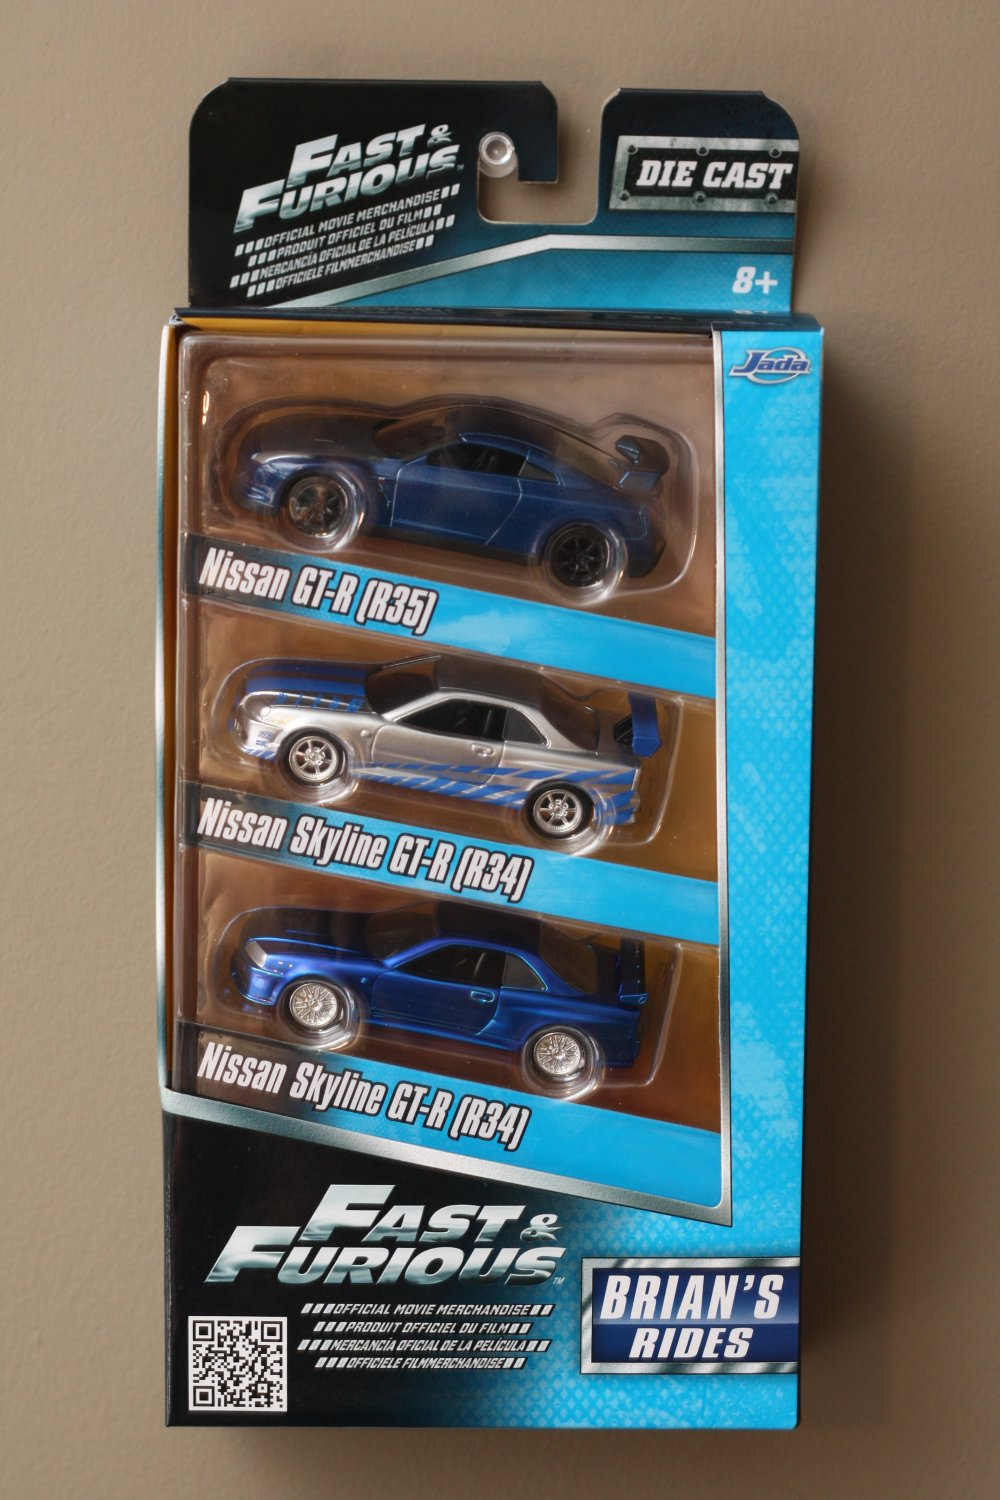 Jada Toys Fast & Furious Brian's Rides 3-Pack (Nissan Skyline R34's and GT-R R35)